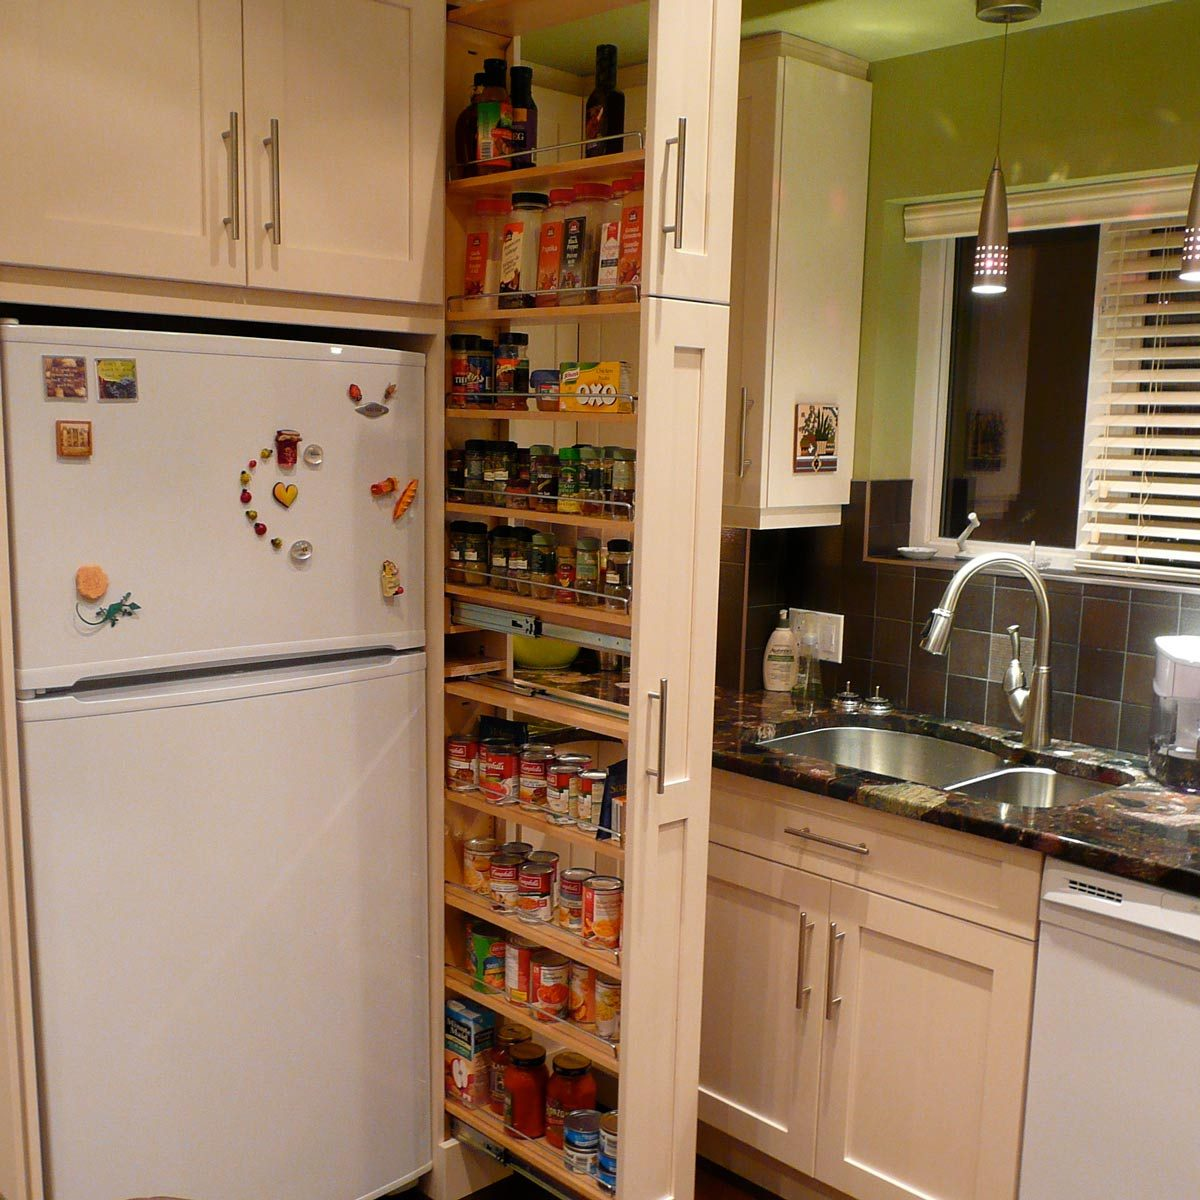 11 Ideas For A Perfectly Organized Kitchen: 11 Ideas For Organizing Your Kitchen